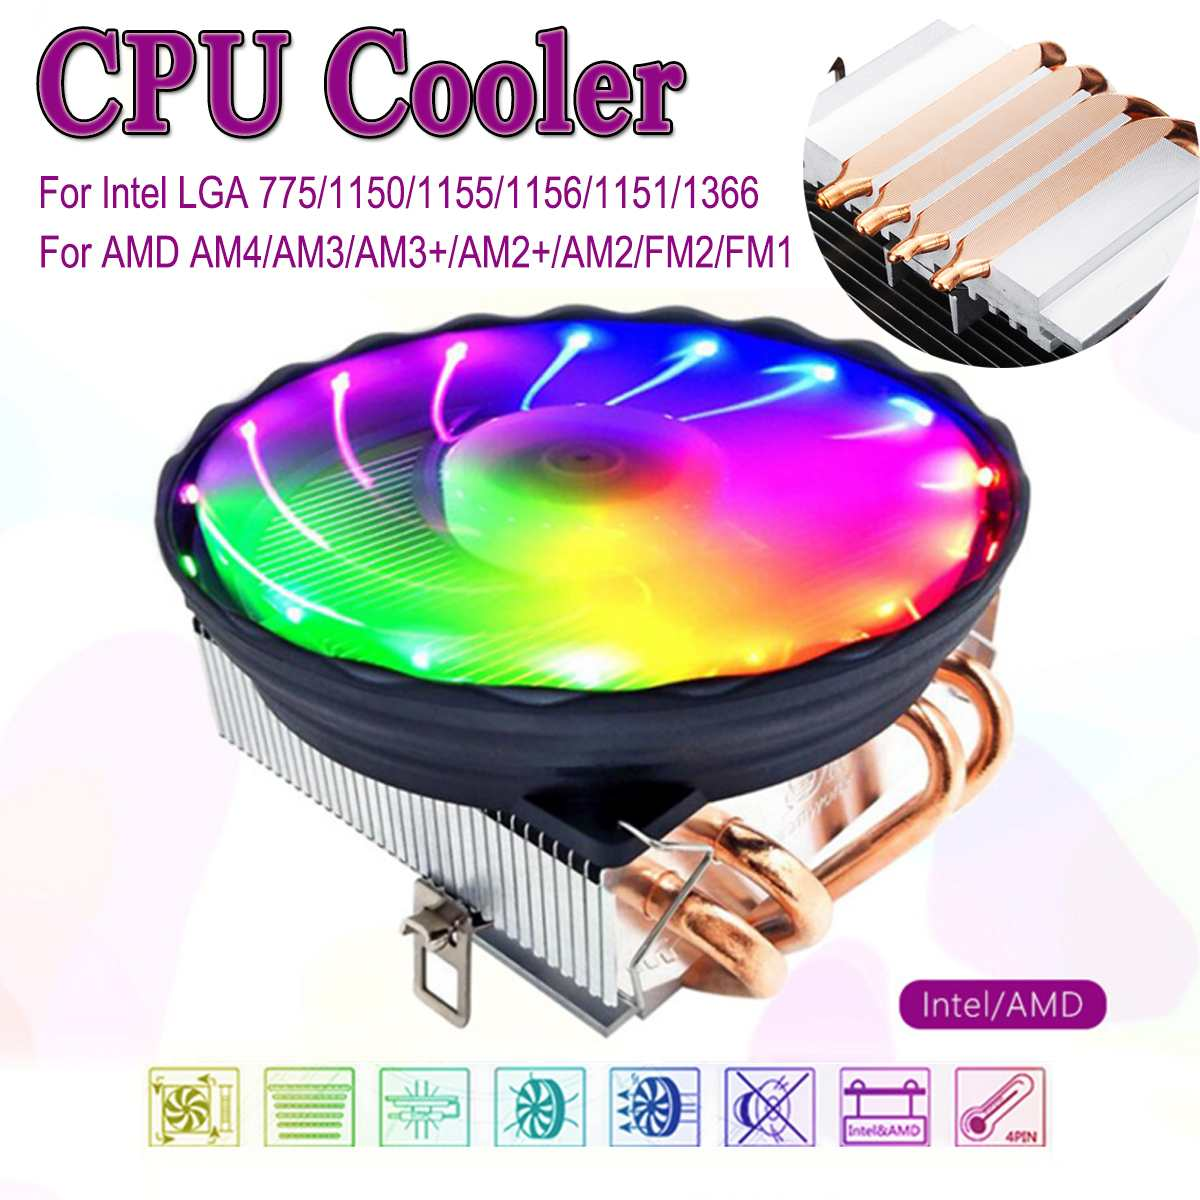 4 Heatpipes CPU Cooler 4pin <font><b>PWM</b></font> LED <font><b>120mm</b></font> Cooling <font><b>Fan</b></font> Radiator Heatsink for Intel LGA 1150/1151/1155/1156 for AMD AM3+ AM3 AM2 image